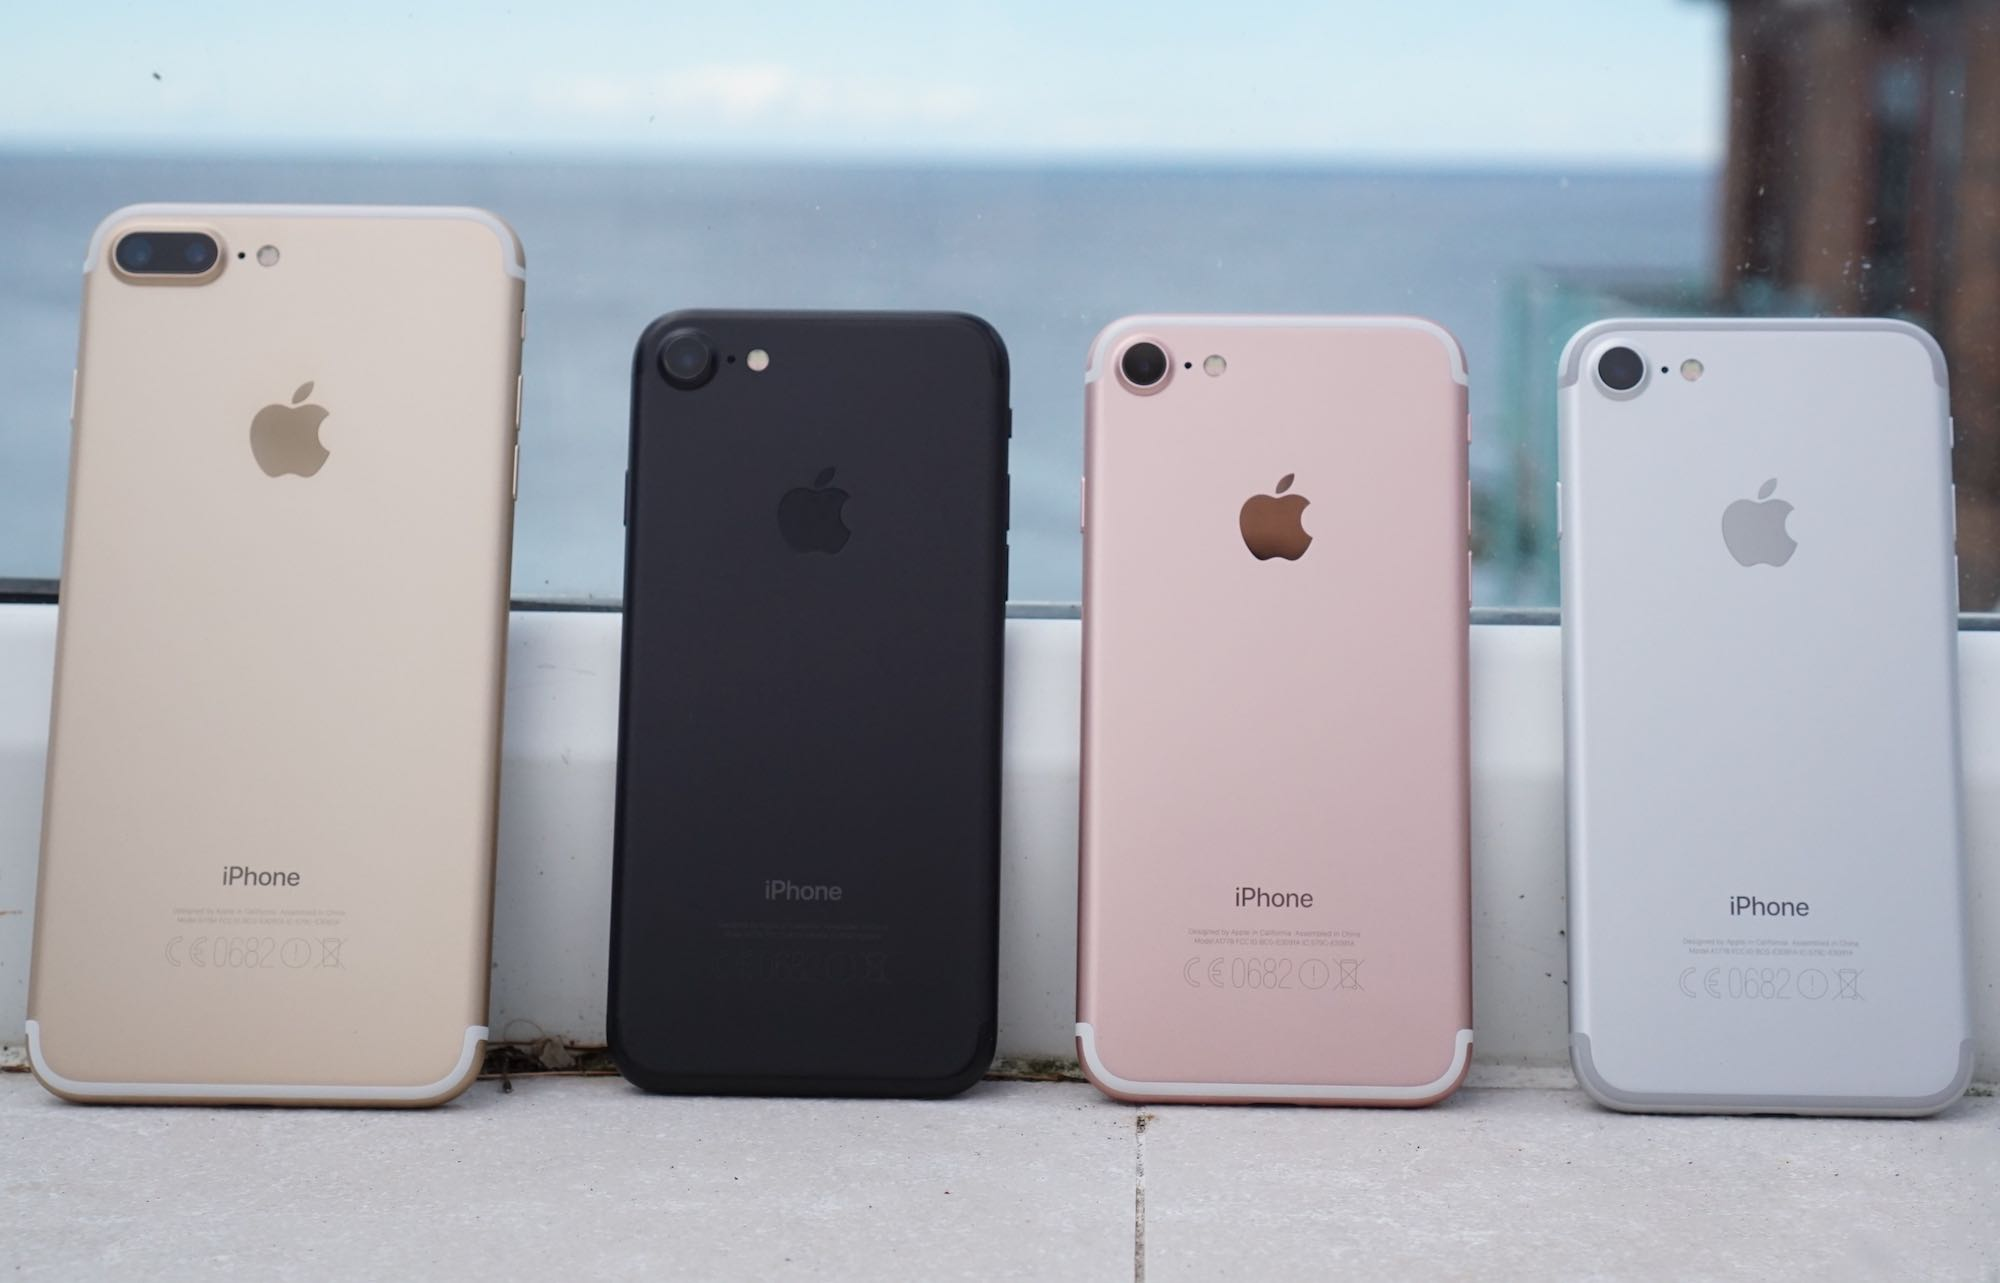 Apple iPhone 7 iPhone 7 Plus Buy Review 3 44